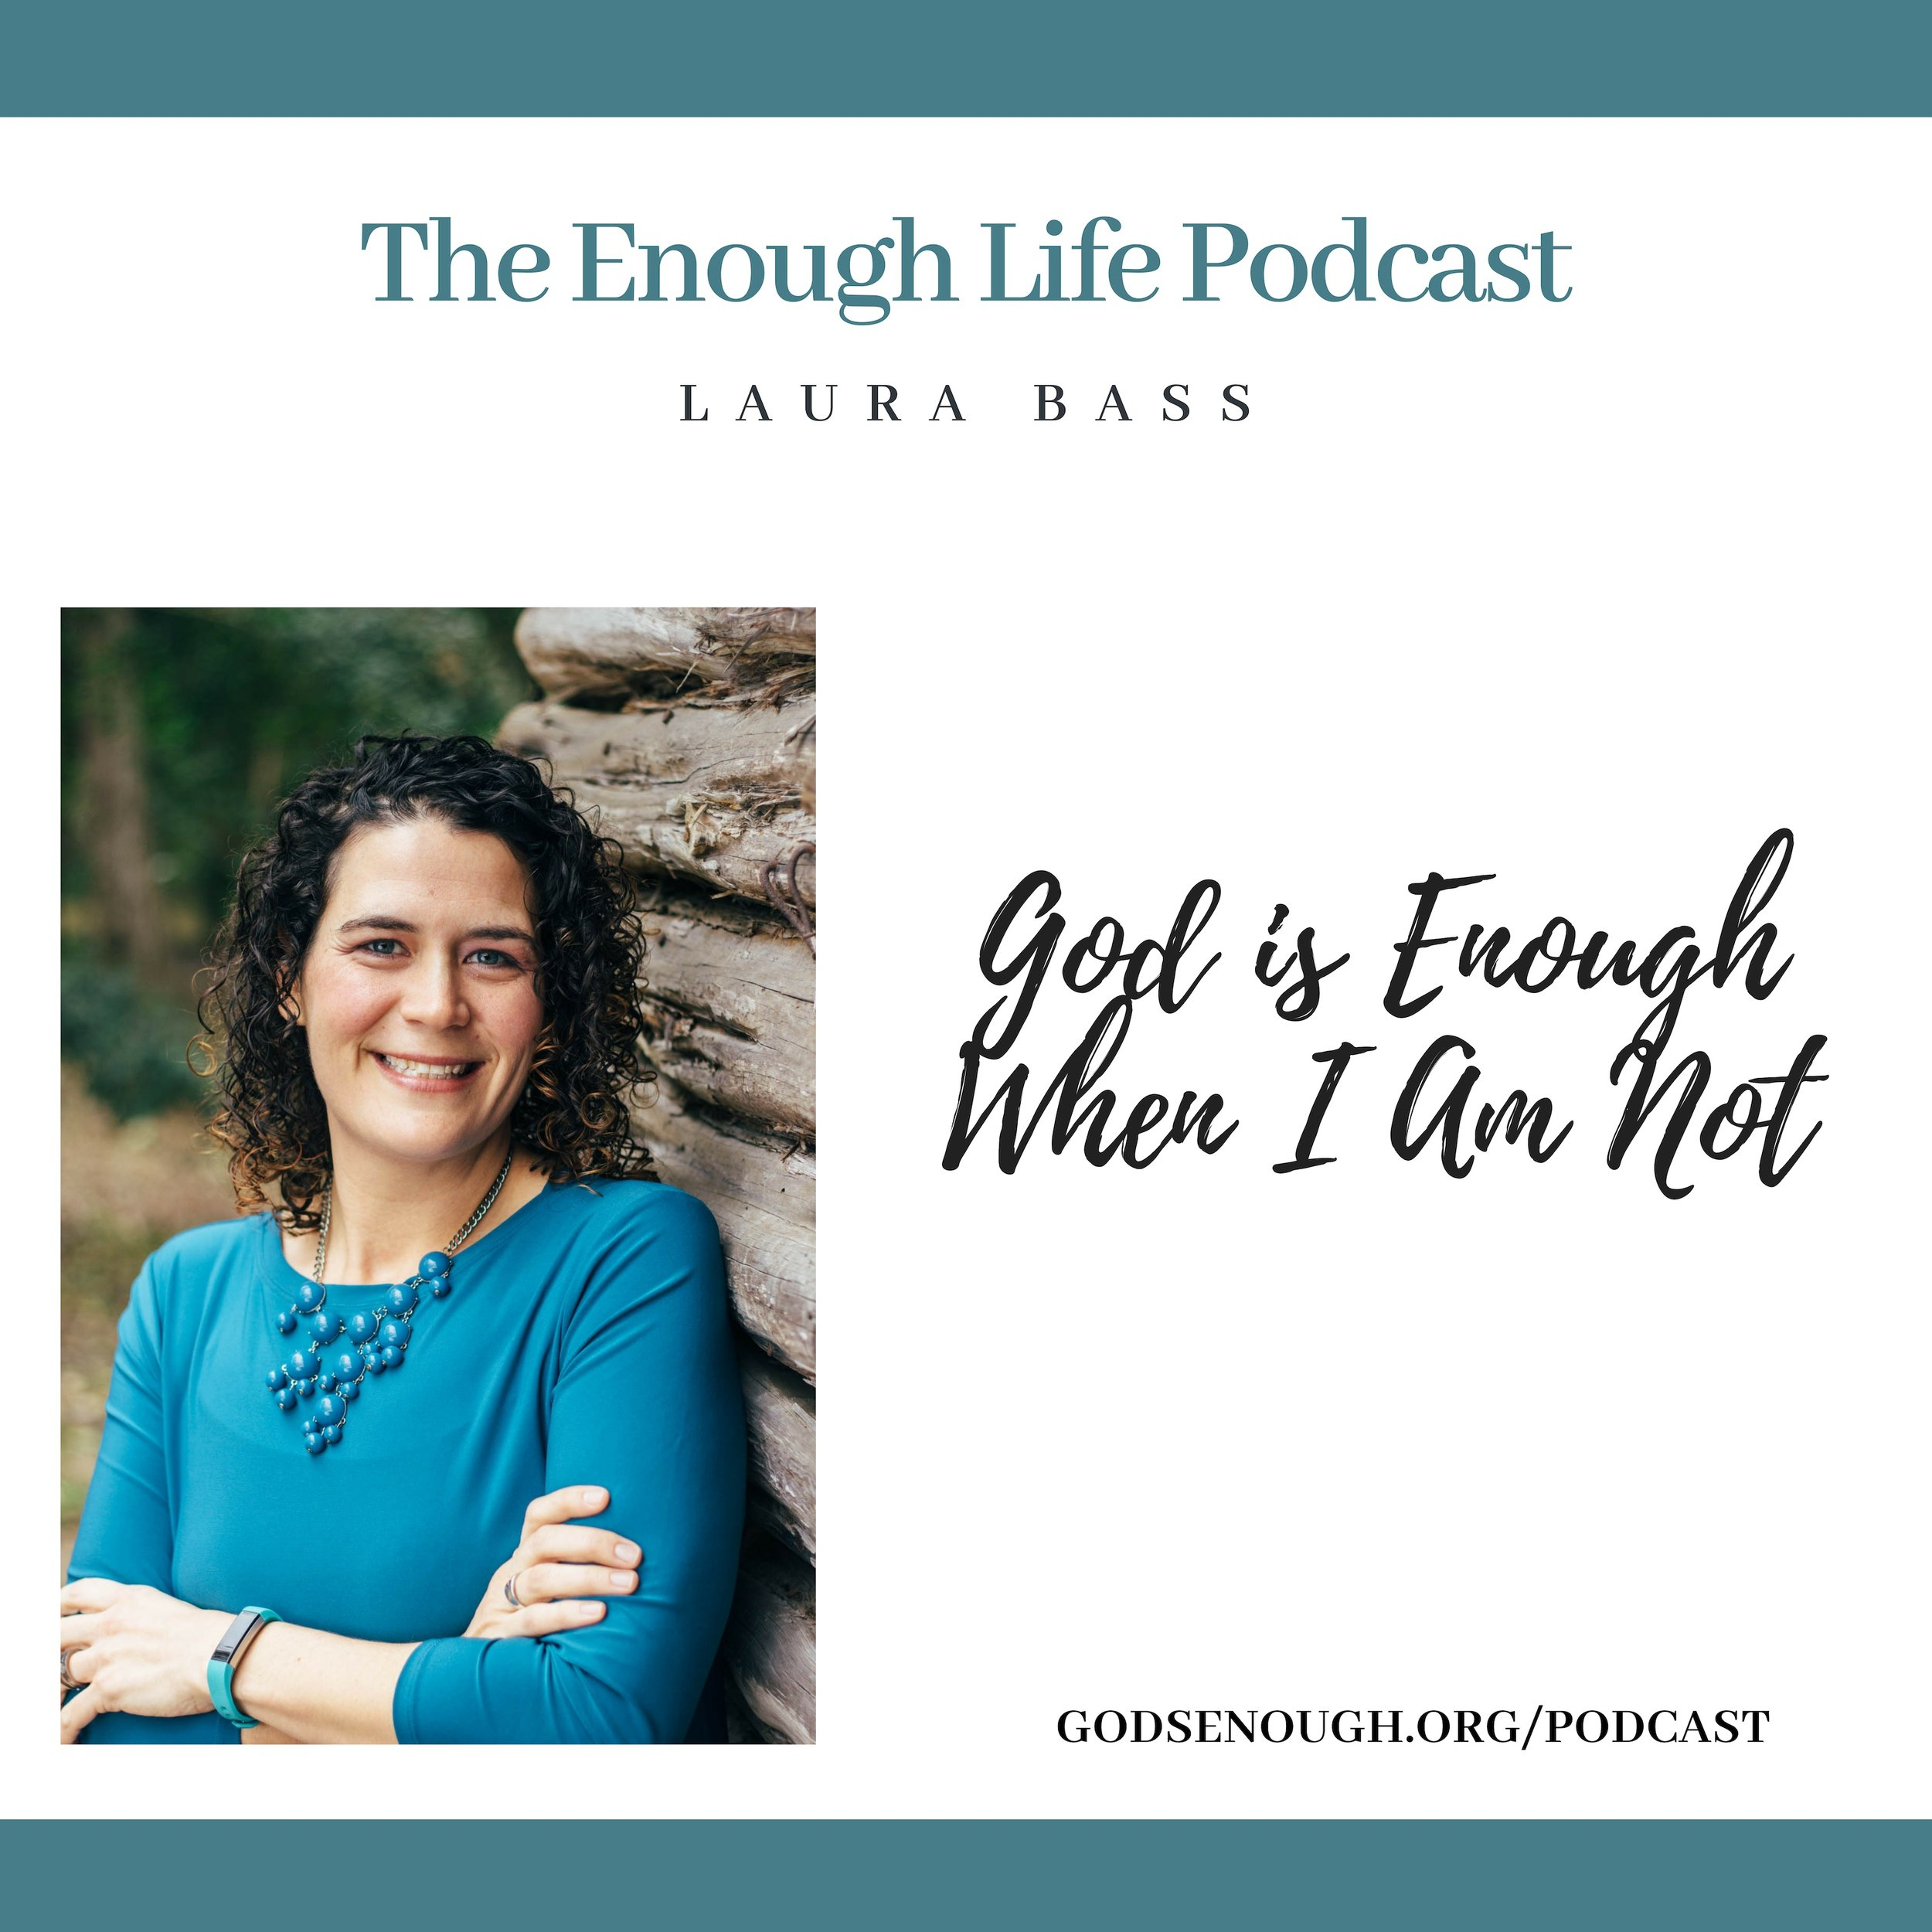 The Enough Life Podcast - Now available on Apple Podcasts, Google Play, Spotify, Stitcher, and Libsyn.